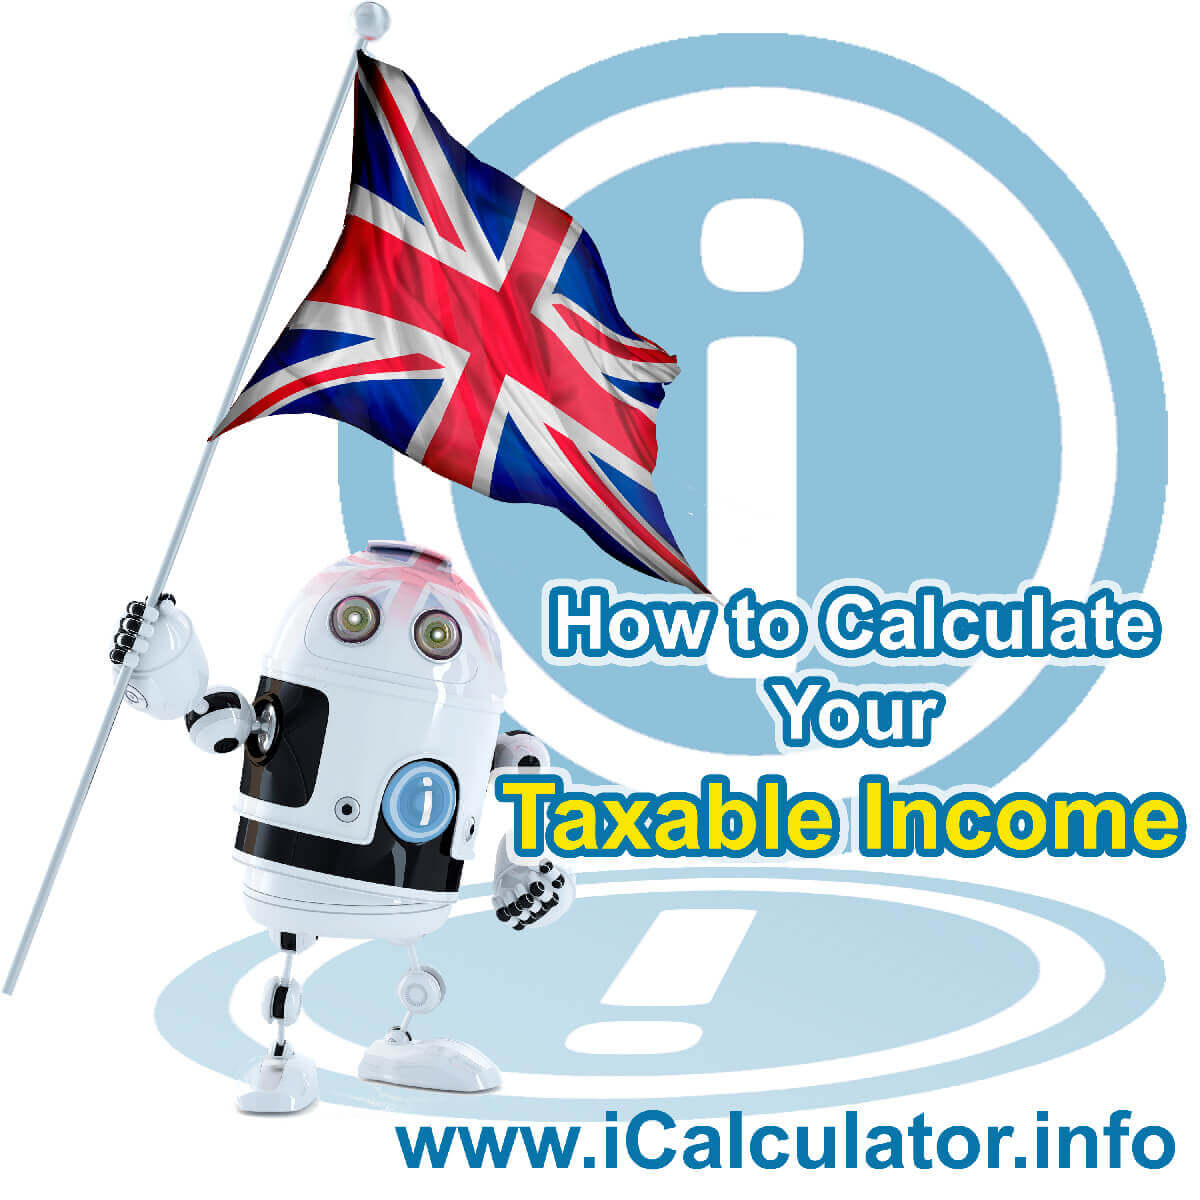 How to Calculate Taxable Income in the UK. This image shows the UK flag and information relating to the tax formula used to calculate taxable income in the UK